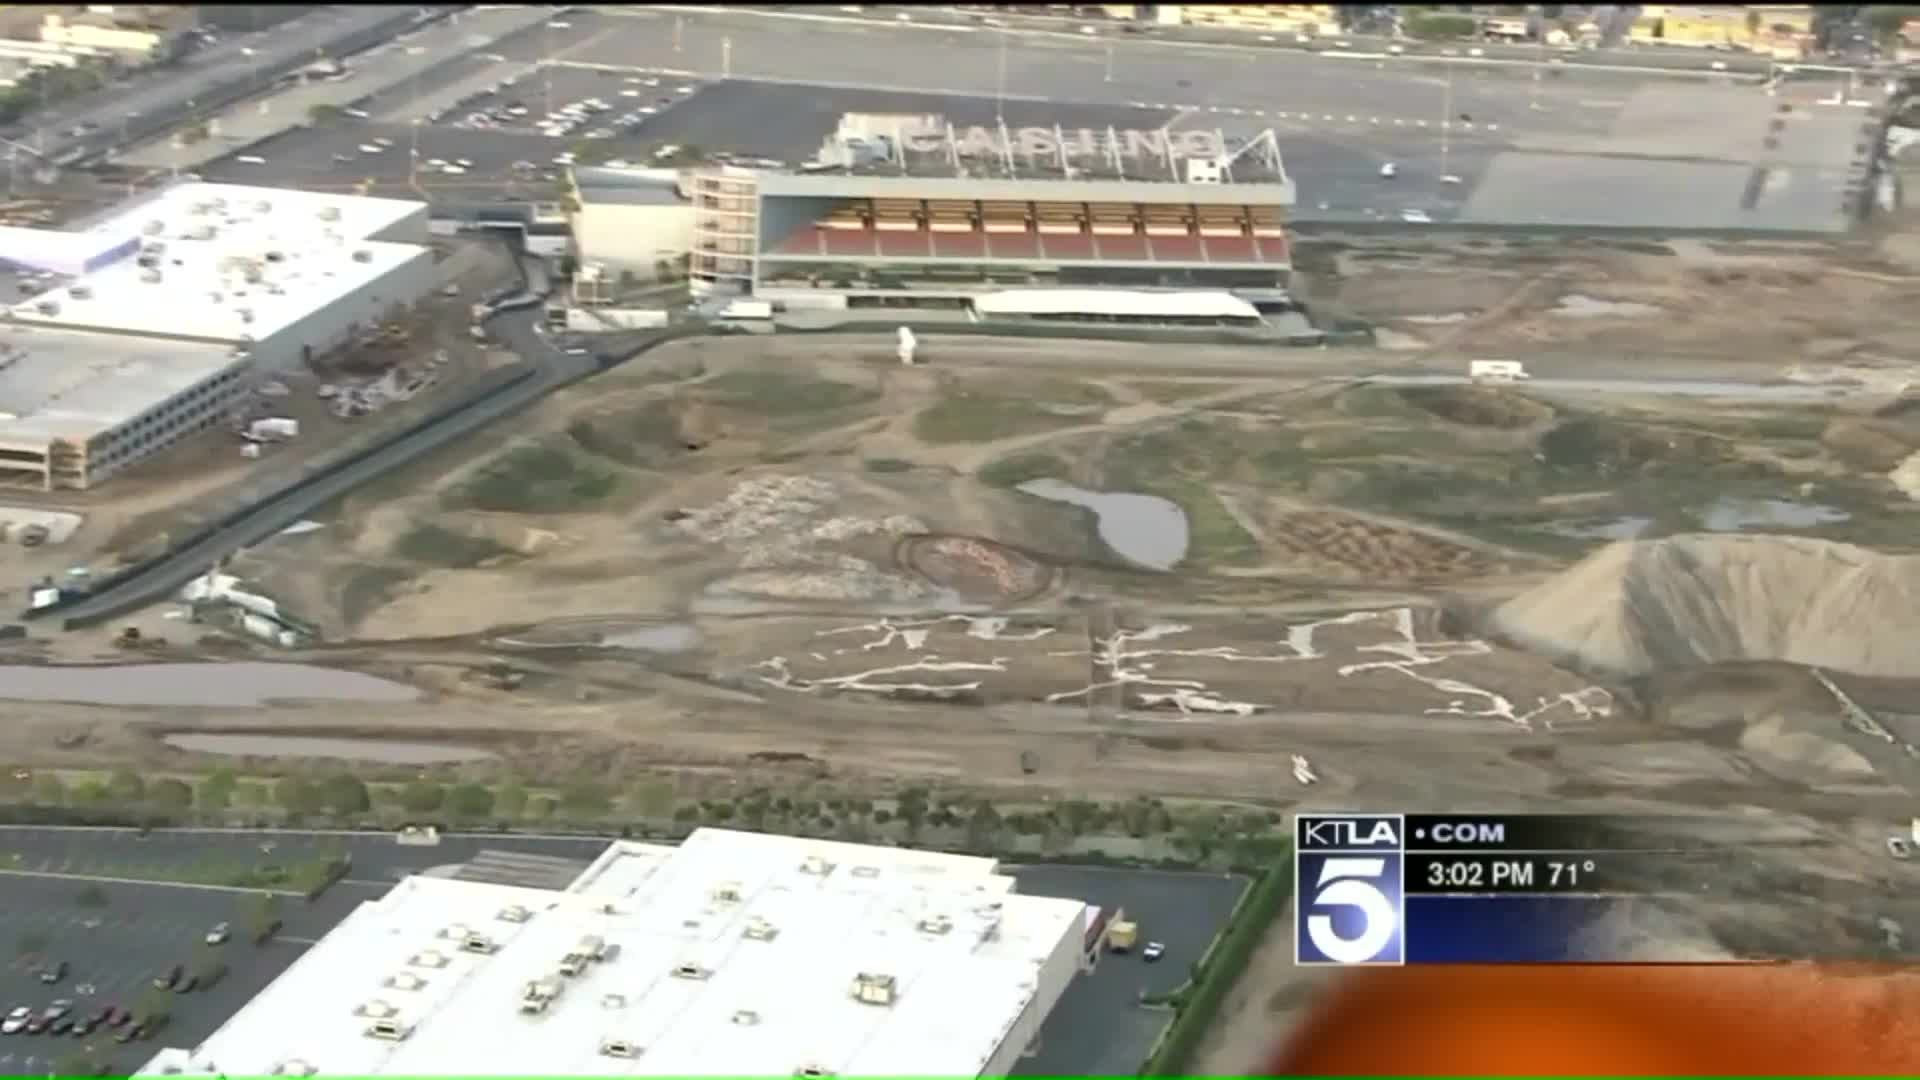 Super Bowl LV To Be Held In Los Angeles In 2021